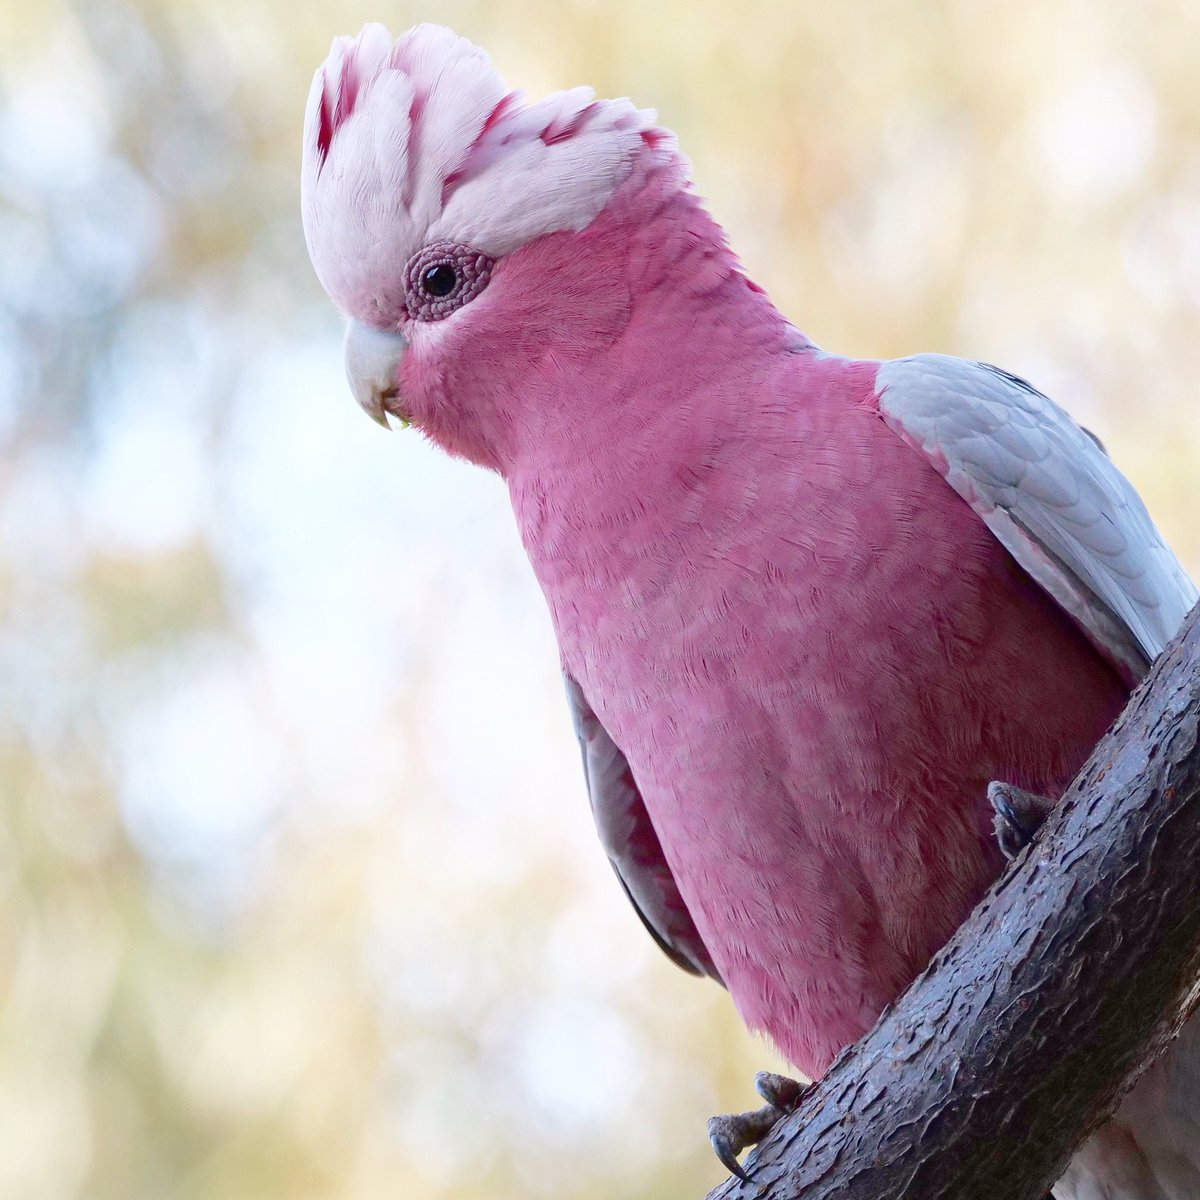 Portrait of a beautiful male galah ... 💕 I hope he brings a smile to those of you who need one  ❤️ @ParrotOfTheDay @BirdlifeOz #birdingathome @Australia #COVID19Vic #covid19australia #IstandwithDan https://t.co/oxi2sNZBvY